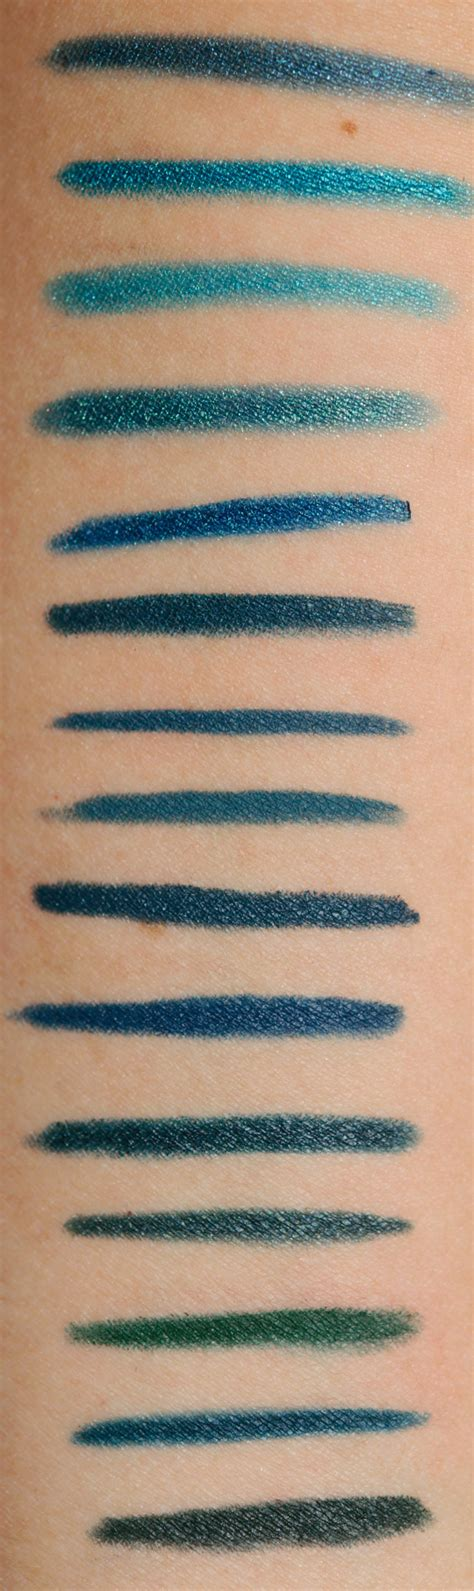 Eyeliner Teal teal blue based eyeliners swatches dupes and comparisons